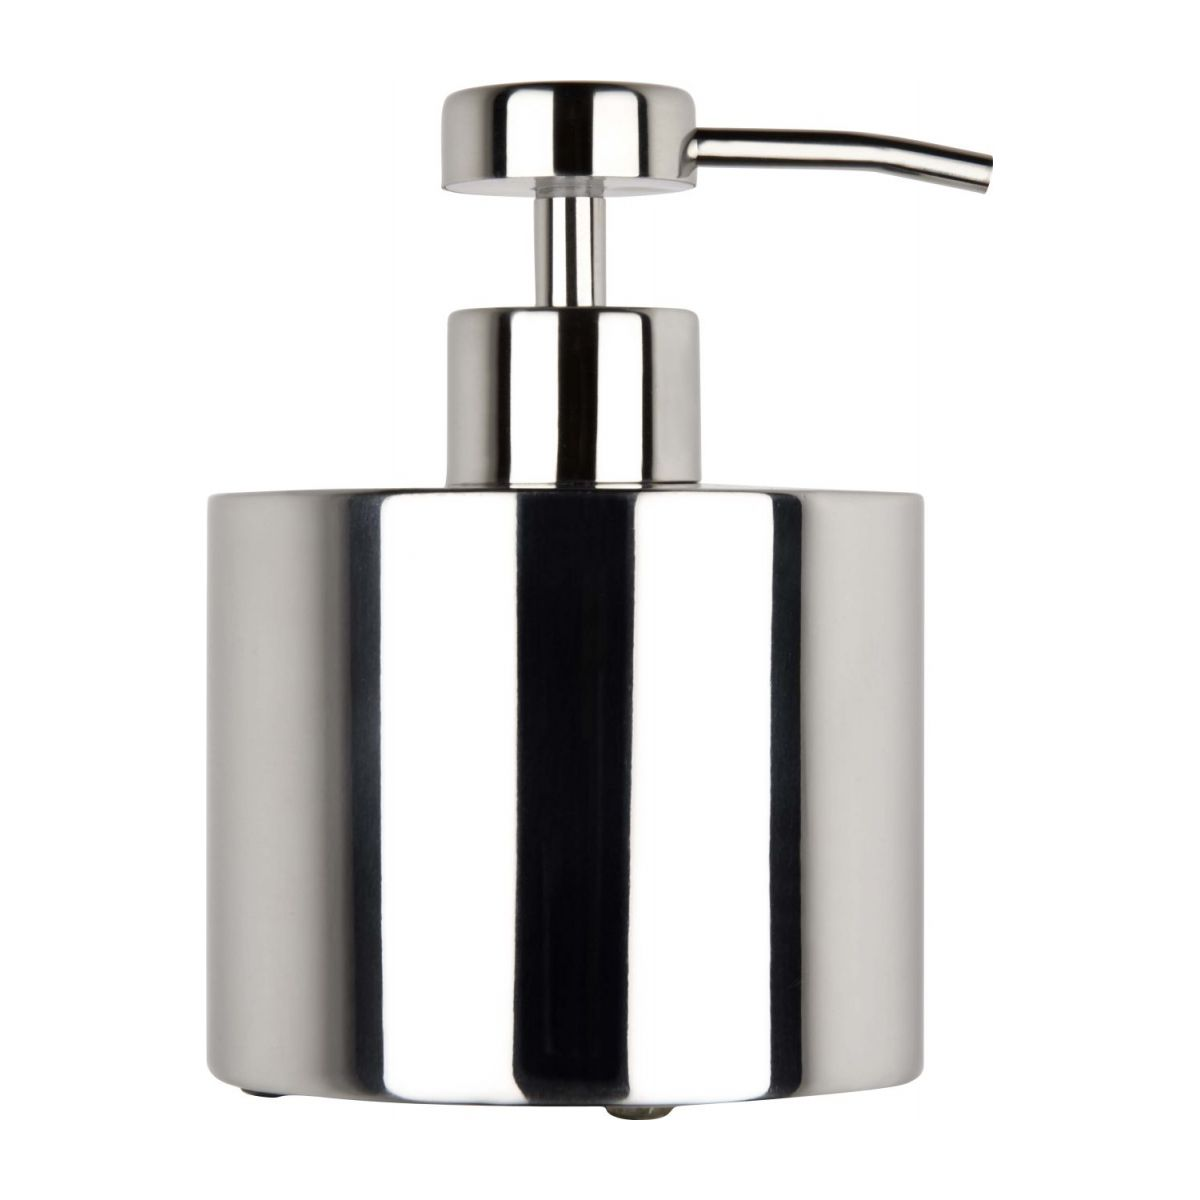 Soap dispenser in stainless steel n°3